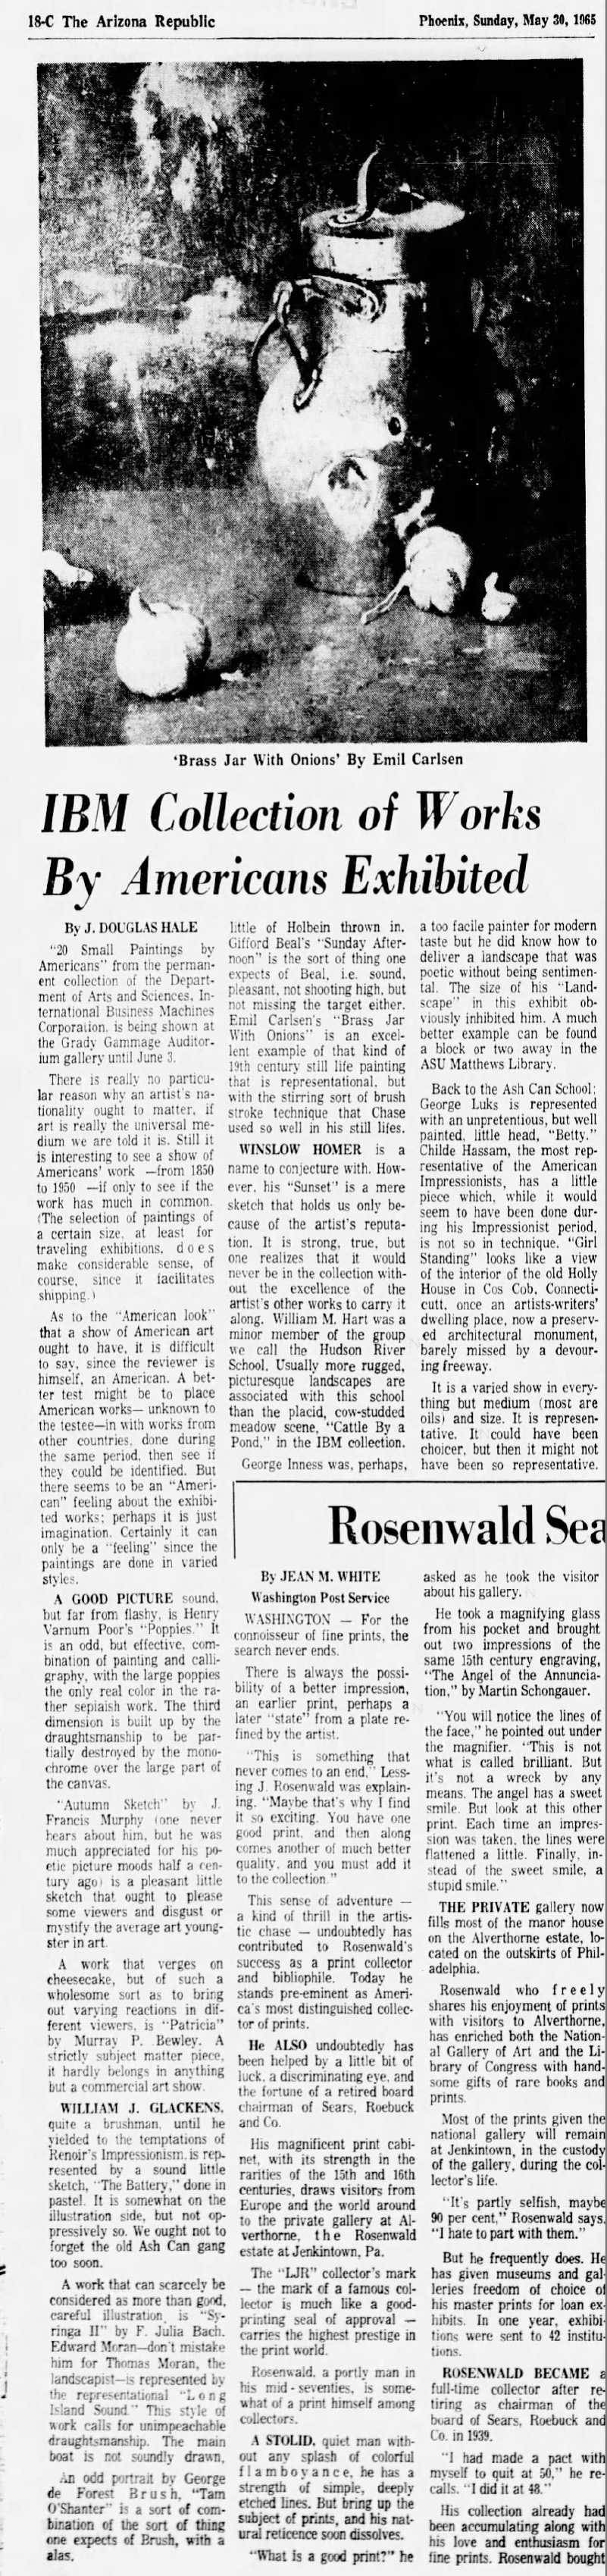 """The Arizona Republic, Phoenix, AZ, """"IBM Collection of Works By Americans Exhibited"""", Sunday, May 30, 1965, page 18-C, illustrated: B&W."""